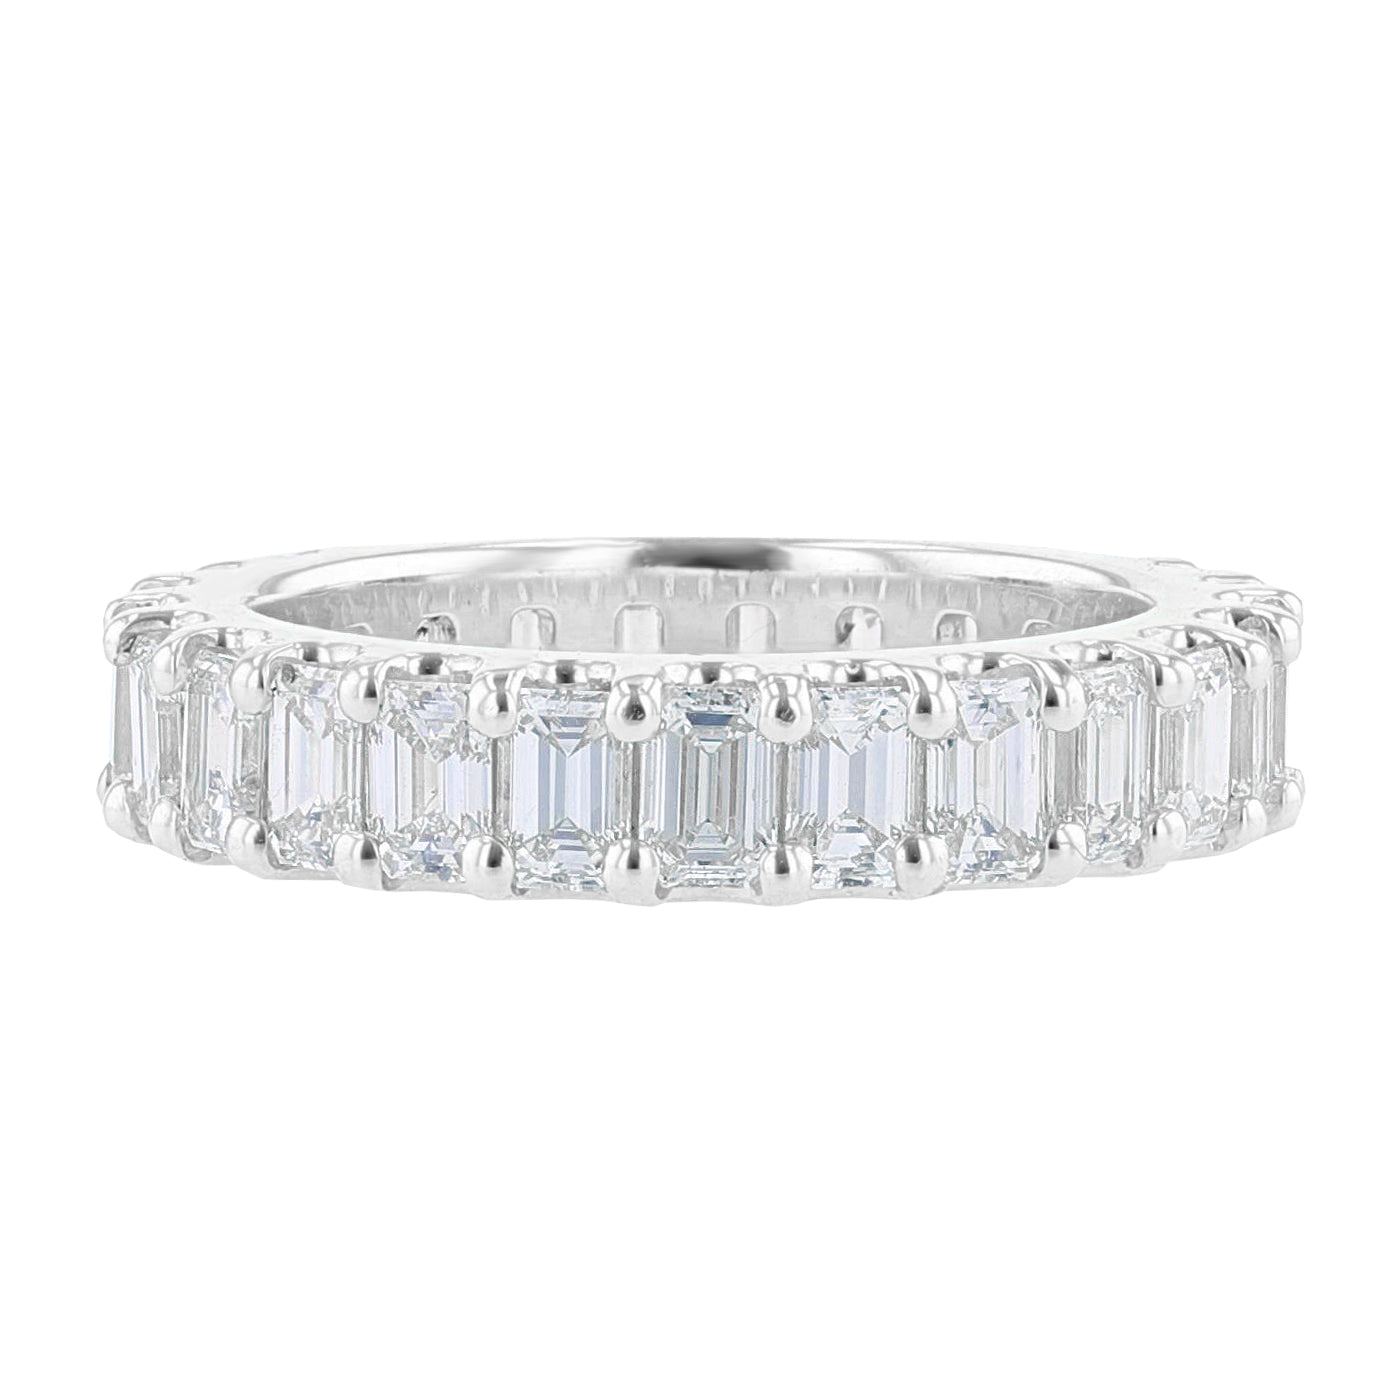 18K White Gold Emerald Cut Eternity Diamond Band - Nazarelle